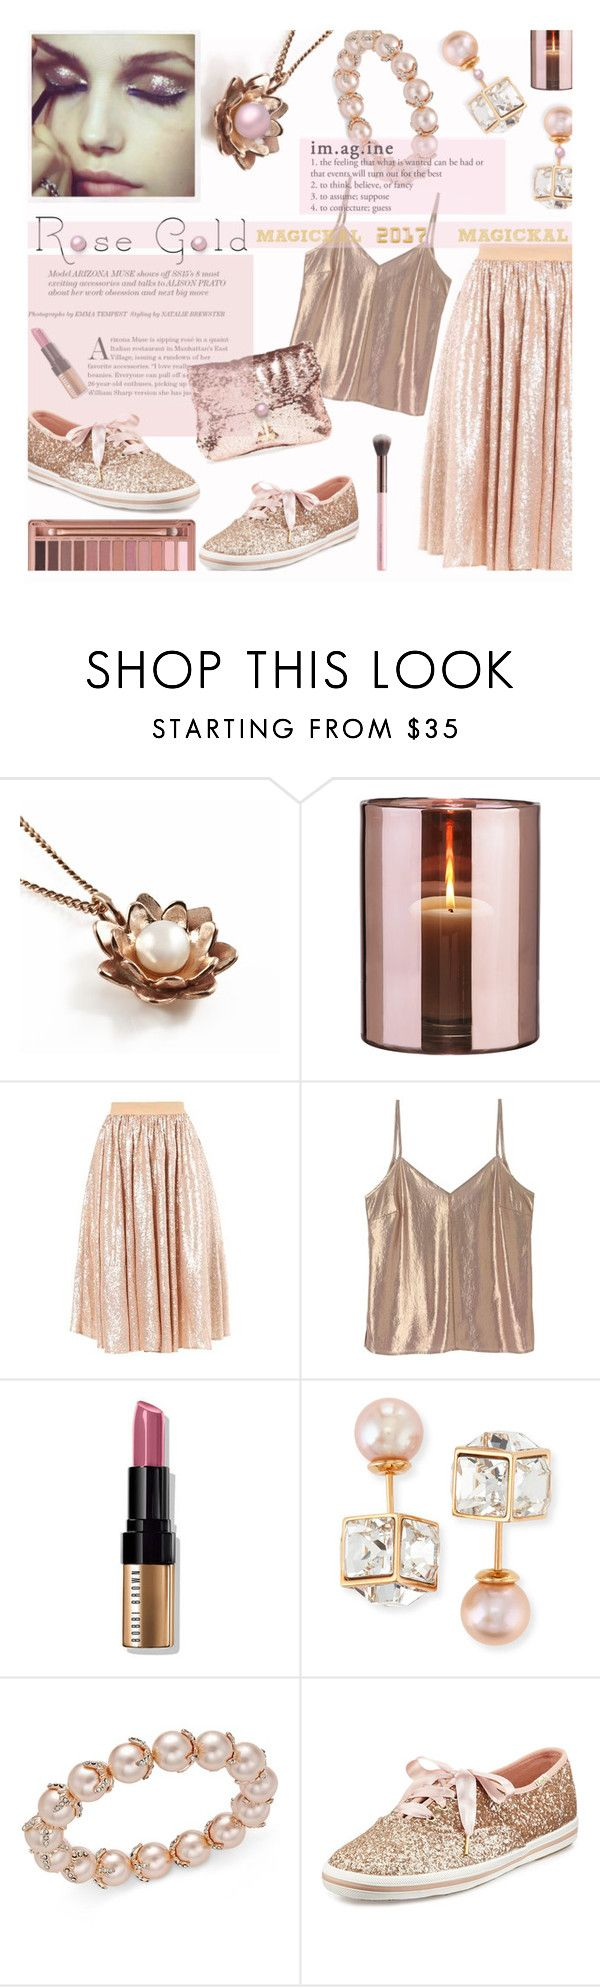 """""""🎀 #615 ✨😊✨  Magickal 2017      #rosegold"""" by wonderful-paradisaical ❤ liked on Polyvore featuring Vicky Davies, Urban Decay, Skogsberg & Smart, A Day in a Life, Bobbi Brown Cosmetics, Vita Fede, Charter Club and Kate Spade"""